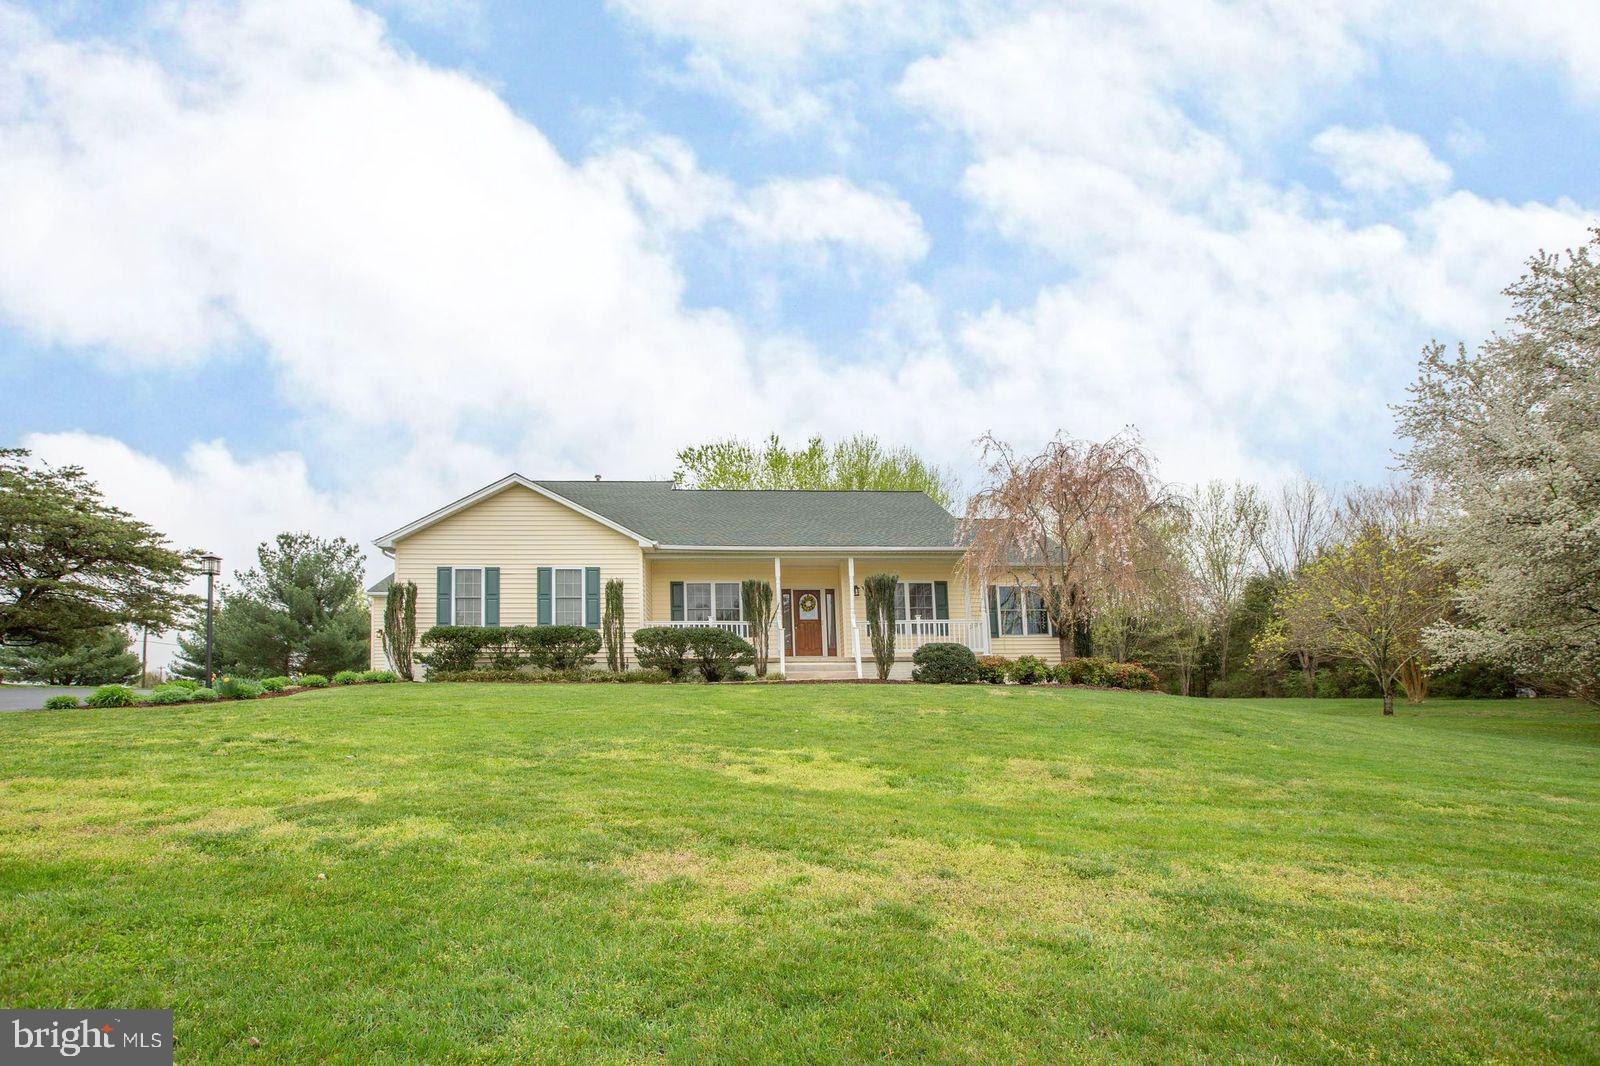 """**MULTIPLE OFFERS RECEIVED, HIGHEST AND BEST OFFERS DUE 05/18/2020 5PM** Price reduced! This meticulously maintained home is ready for new owners! There is so much storage! The kitchen has a huge island (with an electrical outlet) with tons of storage,  an area where you can place stools, eat-in area with plantation shutters, stainless steel appliances, 5 burner stove, granite countertops,  42"""" cabinets & the cabinets with the glass doors have interior lights, hardwood floors, separate dining room with chair railing, formal living room or office, family room with gas fireplace (with remote), the master bedroom has a huge walk-in closet & plantation shutters, master bathroom has a huge soaking tub,  a separate shower, dual sinks and you can even install a TV above the sink area( already pre-wired)!  There is a huge front porch and 20'x40' ( 600 SQFT mostly) covered deck!  There is a swing set and horse shoe pit in the back yard, stamped concrete patio in addition to several fruit trees, including green apple tree, grapes, and blackberries ! The second attached garage is actually a boat house with an eight foot opening and is 31' x 15' and  can be used as a second 2 car garage! There is an exit door in the front and back for easy access, you can even build a 2nd story on the boathouse or use the attic for even more storage!  The crawl space has been encapsulated as well as the attic.  The windows, HVAC & roof are about 5 years old; the shingles are 50 year mold proof,  septic pumps are new, there is a humidifier on the HVAC that is about 5-7 years old with an infrared bacteria zapper that cleans the air for allergies  and so much more! The community has water access, that boats with trolling motors can be used (No gas motors), picnic tables and the reservoir is fully stocked if you like to fish! There is a 9 zone irrigation system. The main bathroom on the main level has handicap access for the shower."""